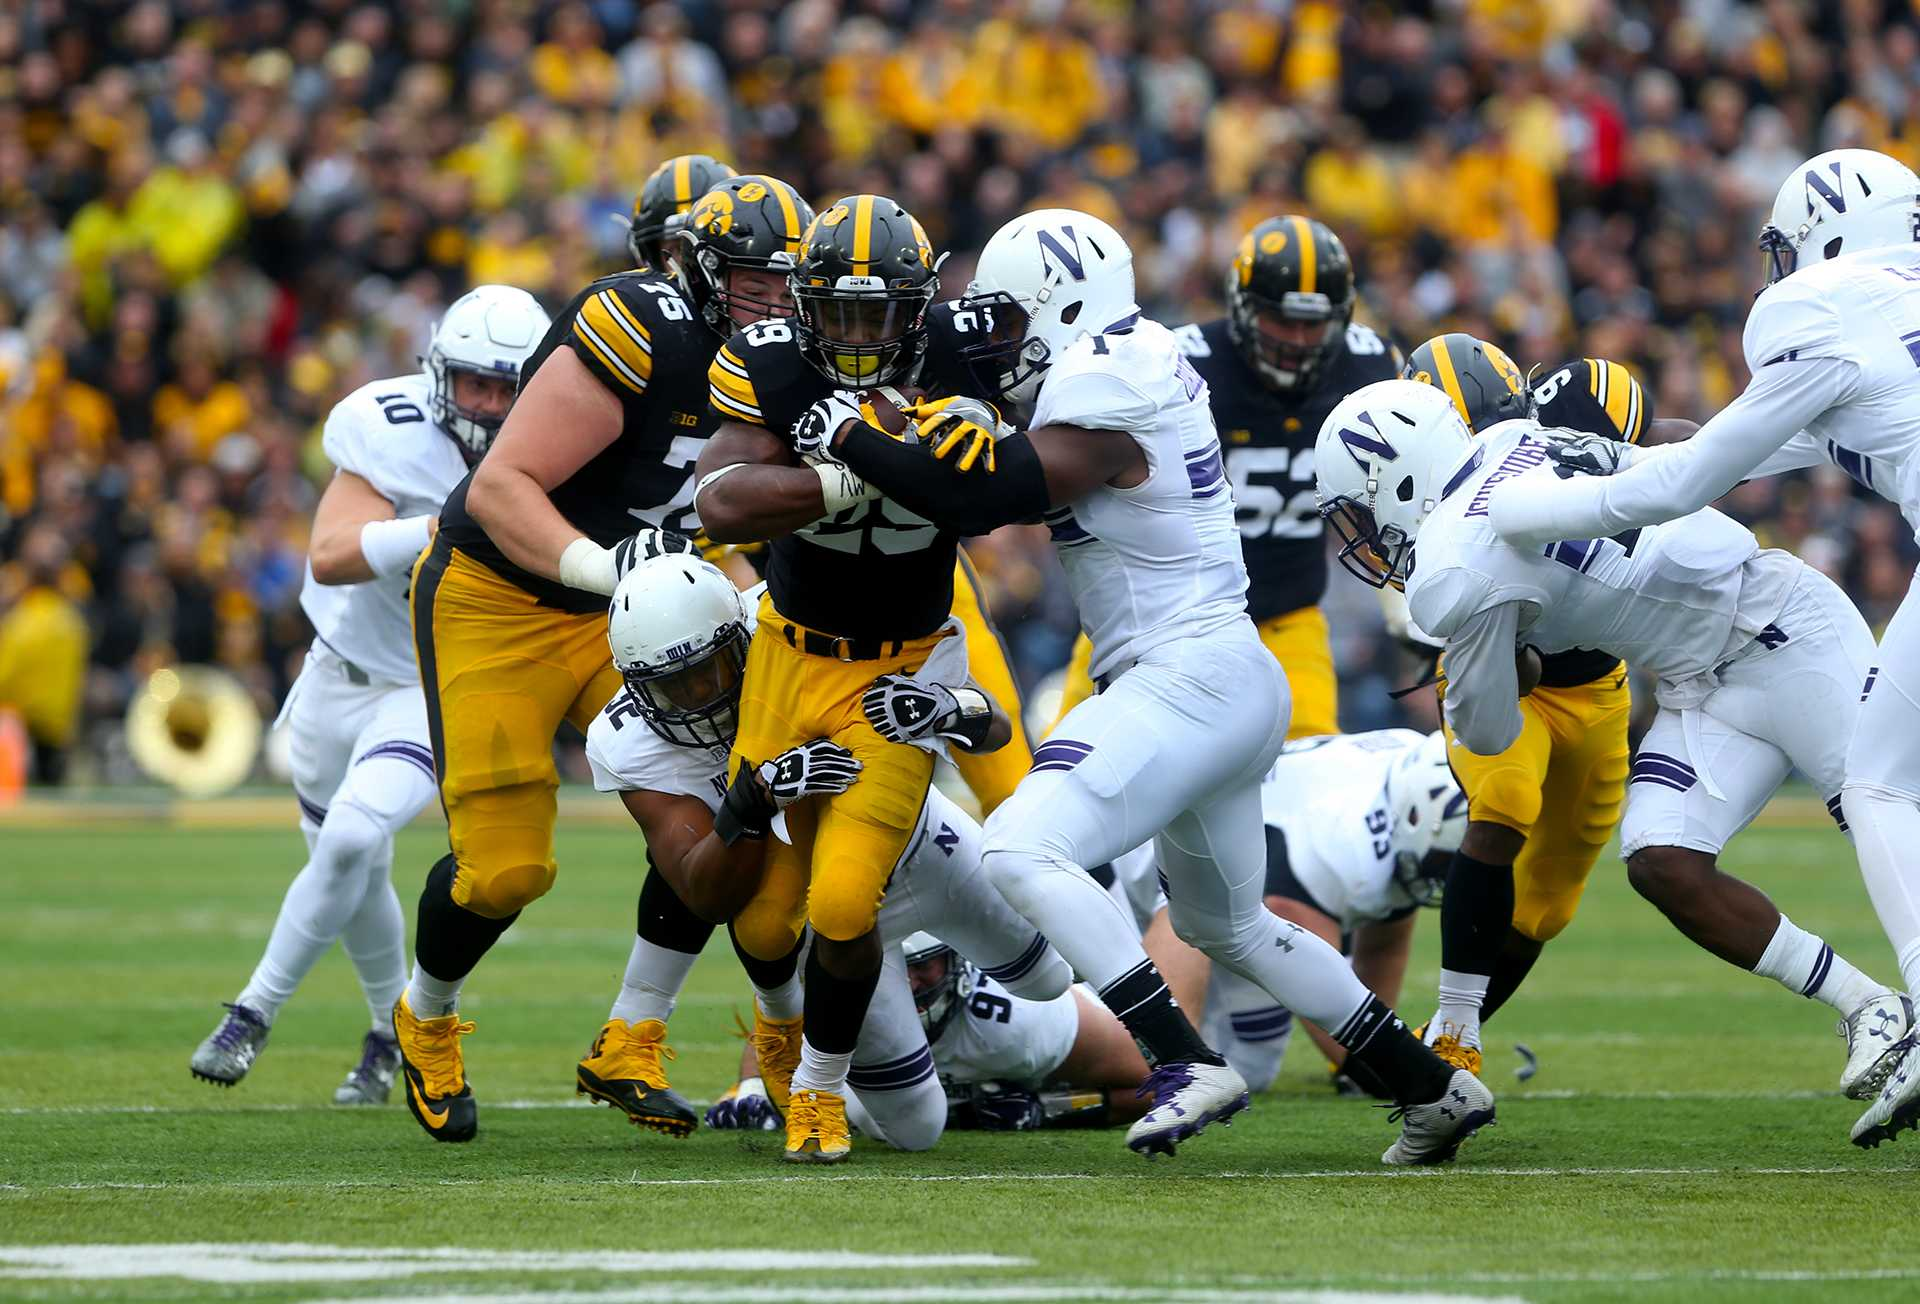 FILE - Northwestern linebacker Nate Hall tackles Iowa running back LeShun Daniels during the game between Iowa and Northwestern in Iowa City on Saturday, October 1, 2016. The Wildcats defeated the Hawkeyes 38-31. (The Daily Iowan/file)